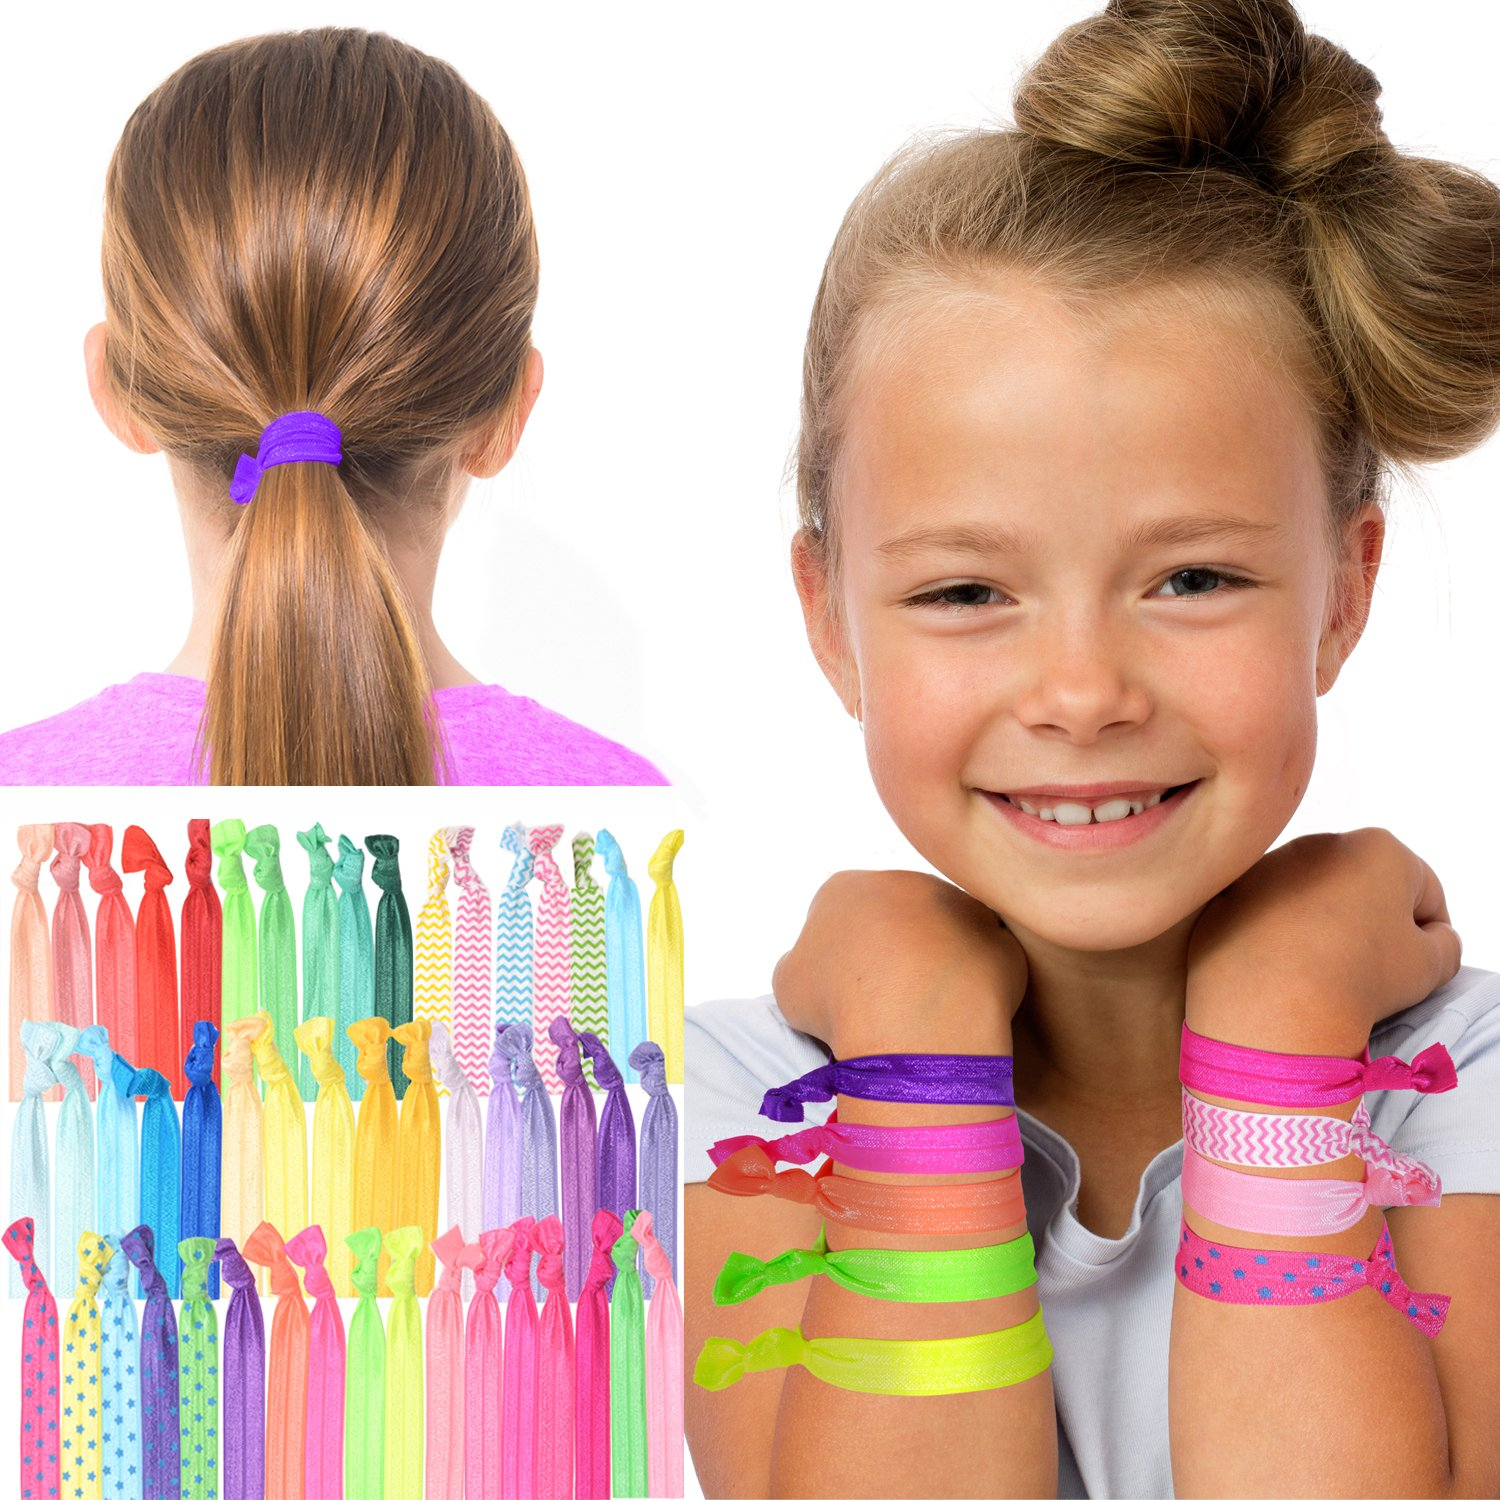 GIFTS FOR GIRLS: Colourful No Crease Hair Ties, Huge Pack Of Fun Hair Accessories For Girls - Best Birthday Gifts Present Idea For Girls Age 3 4 5 6 7 8 9 10 11 12 years old. GirlZone